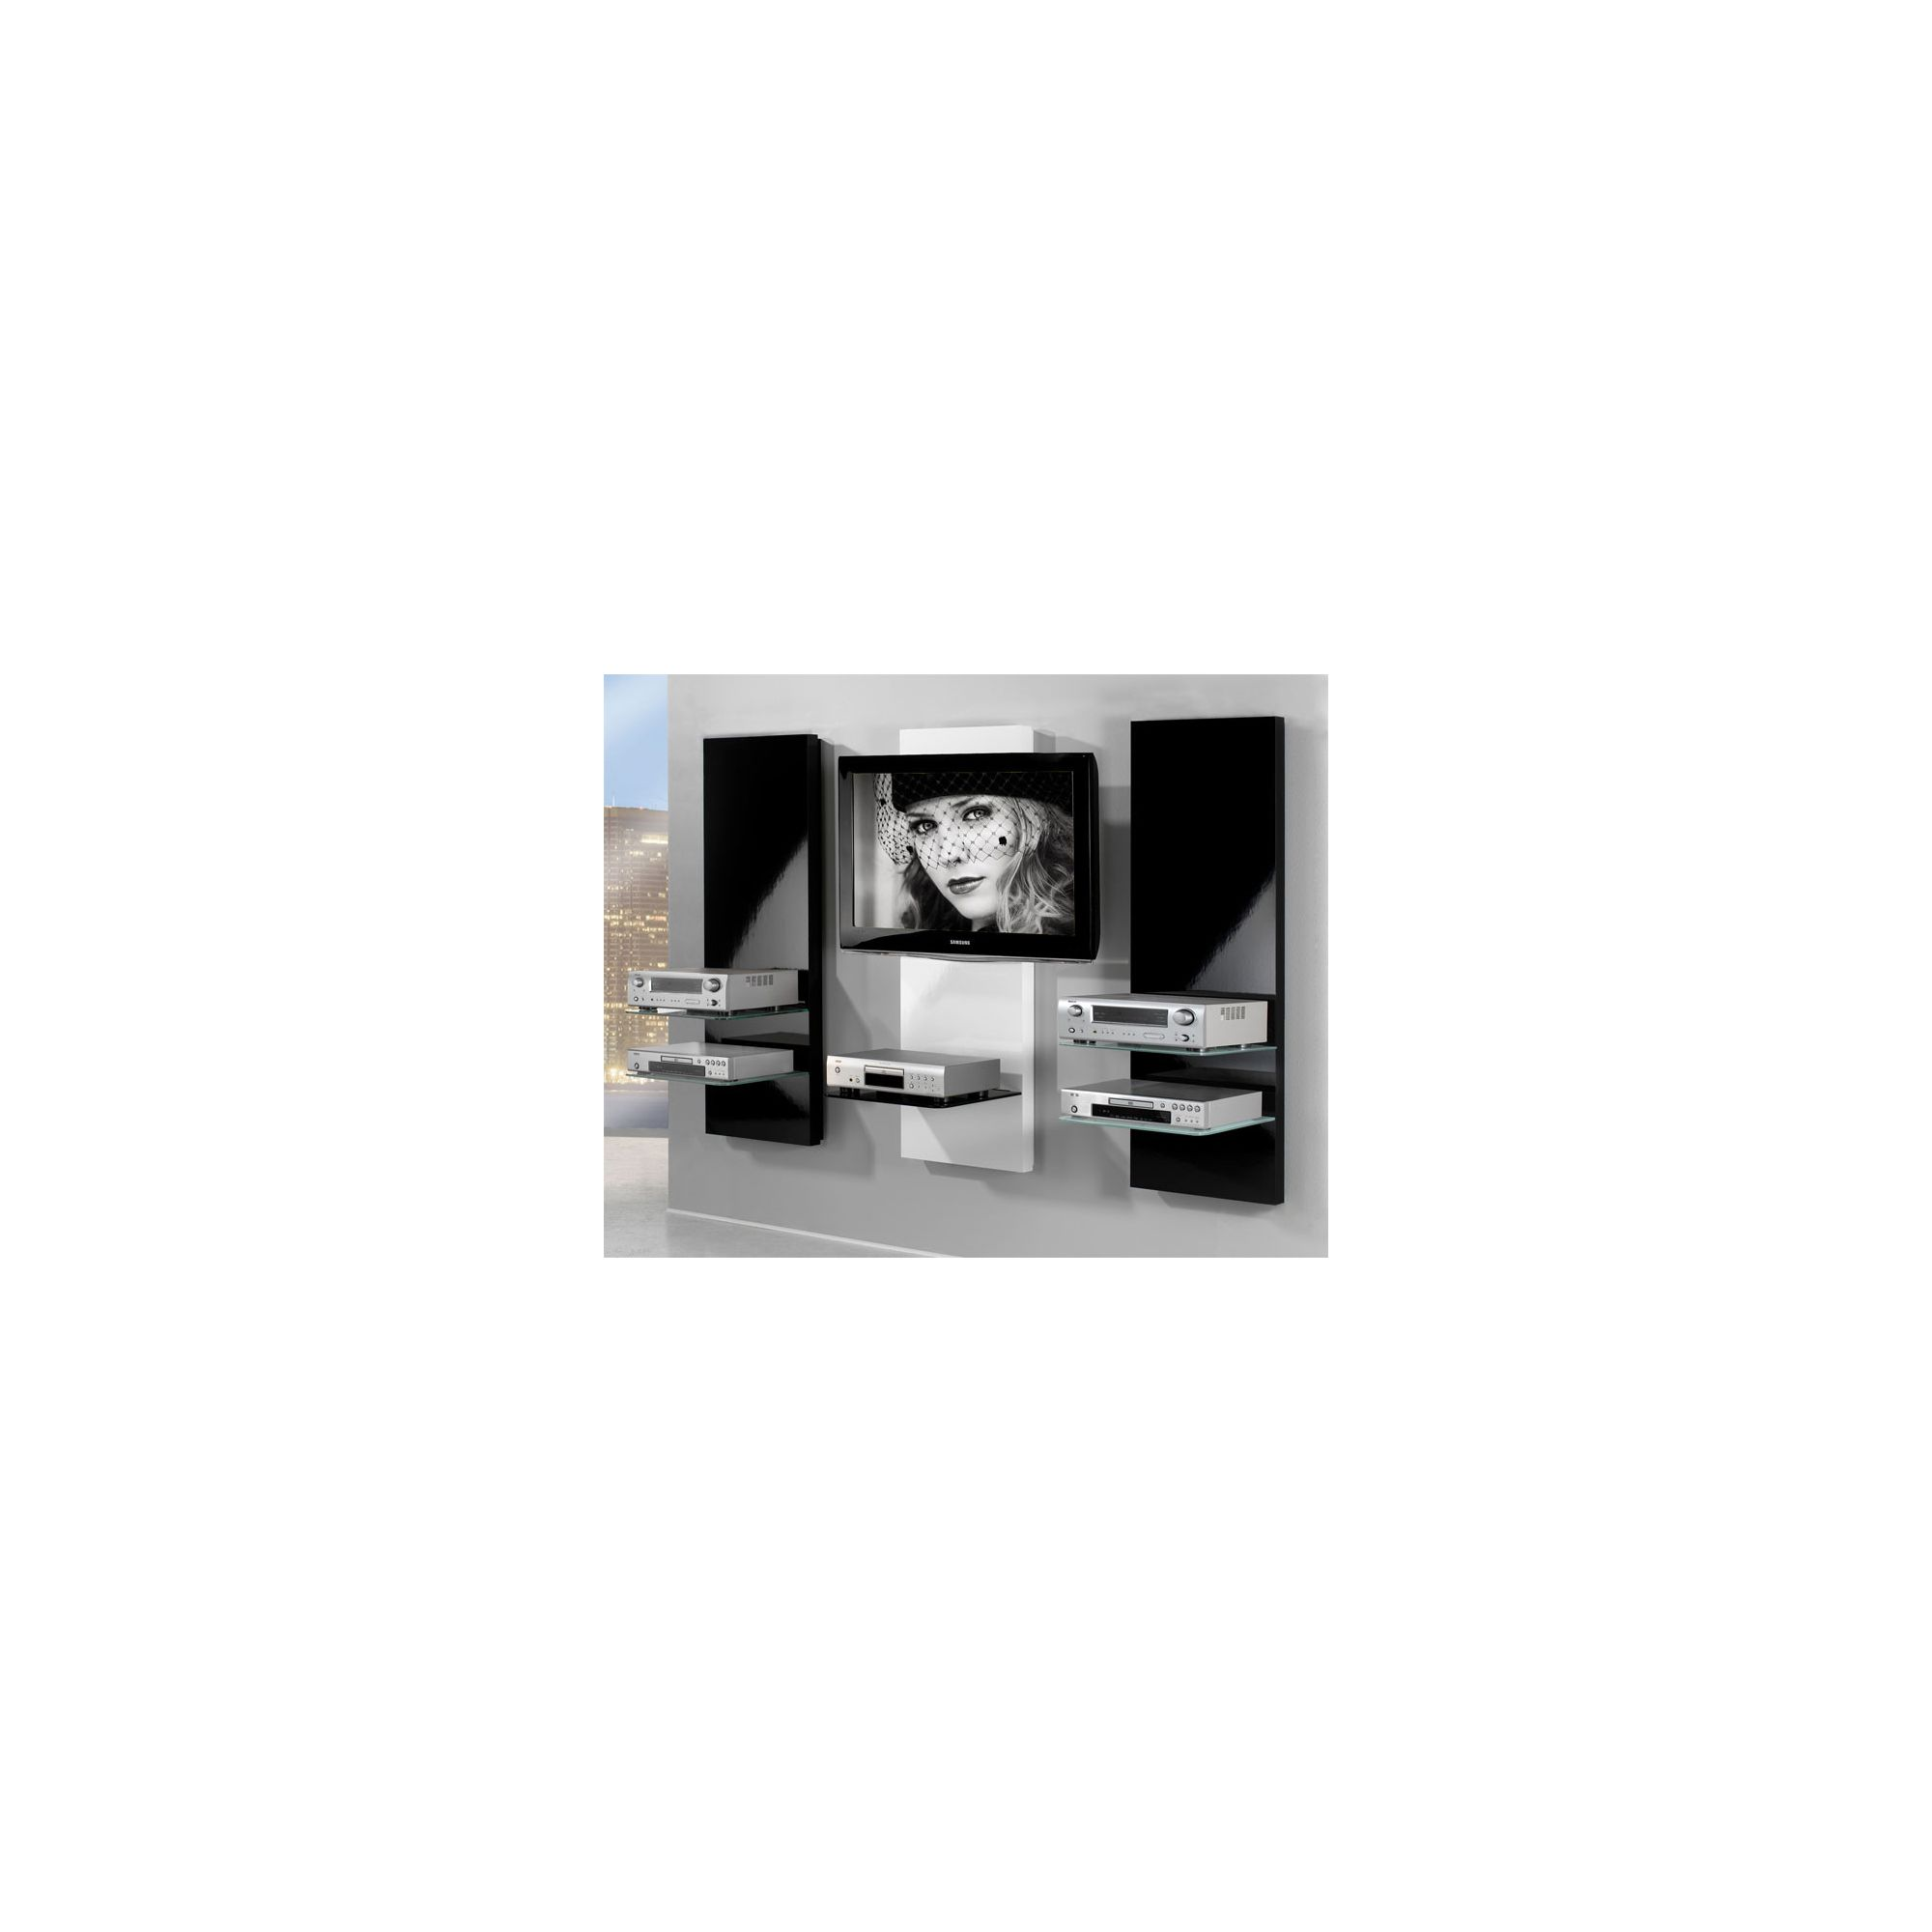 Triskom Wooden TV Stand for LCD / Plasmas with Bracket - White Centre with Black Sides at Tesco Direct